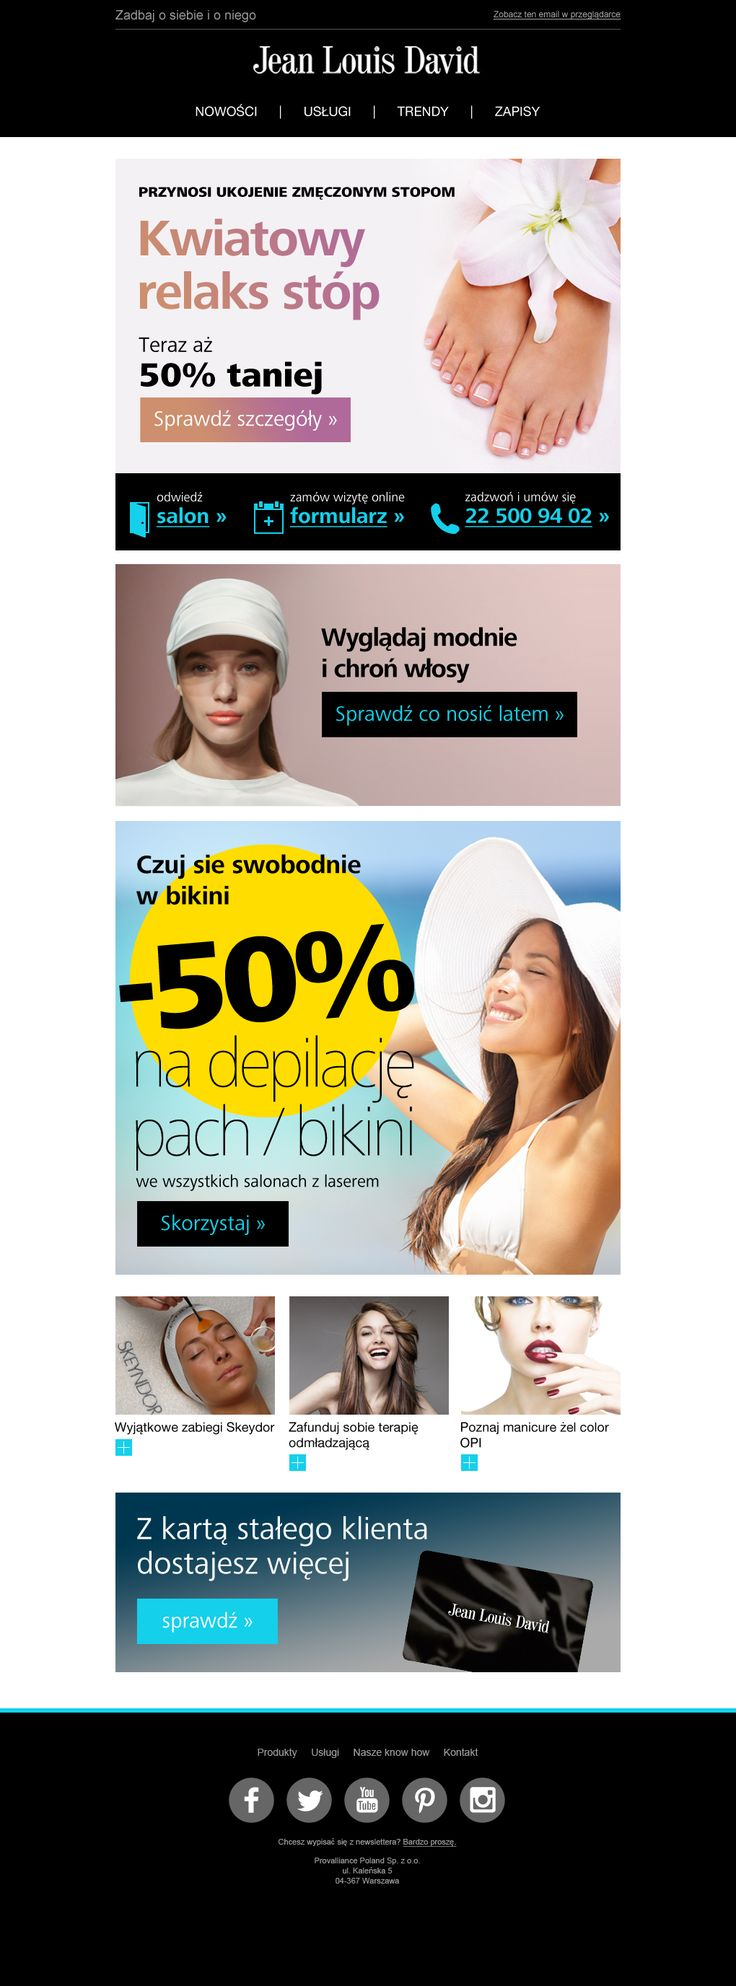 Letnie promocje i content na lato od Jean Louis David.  #newsletter #email #ecommerce #jeanlouisdavid #template